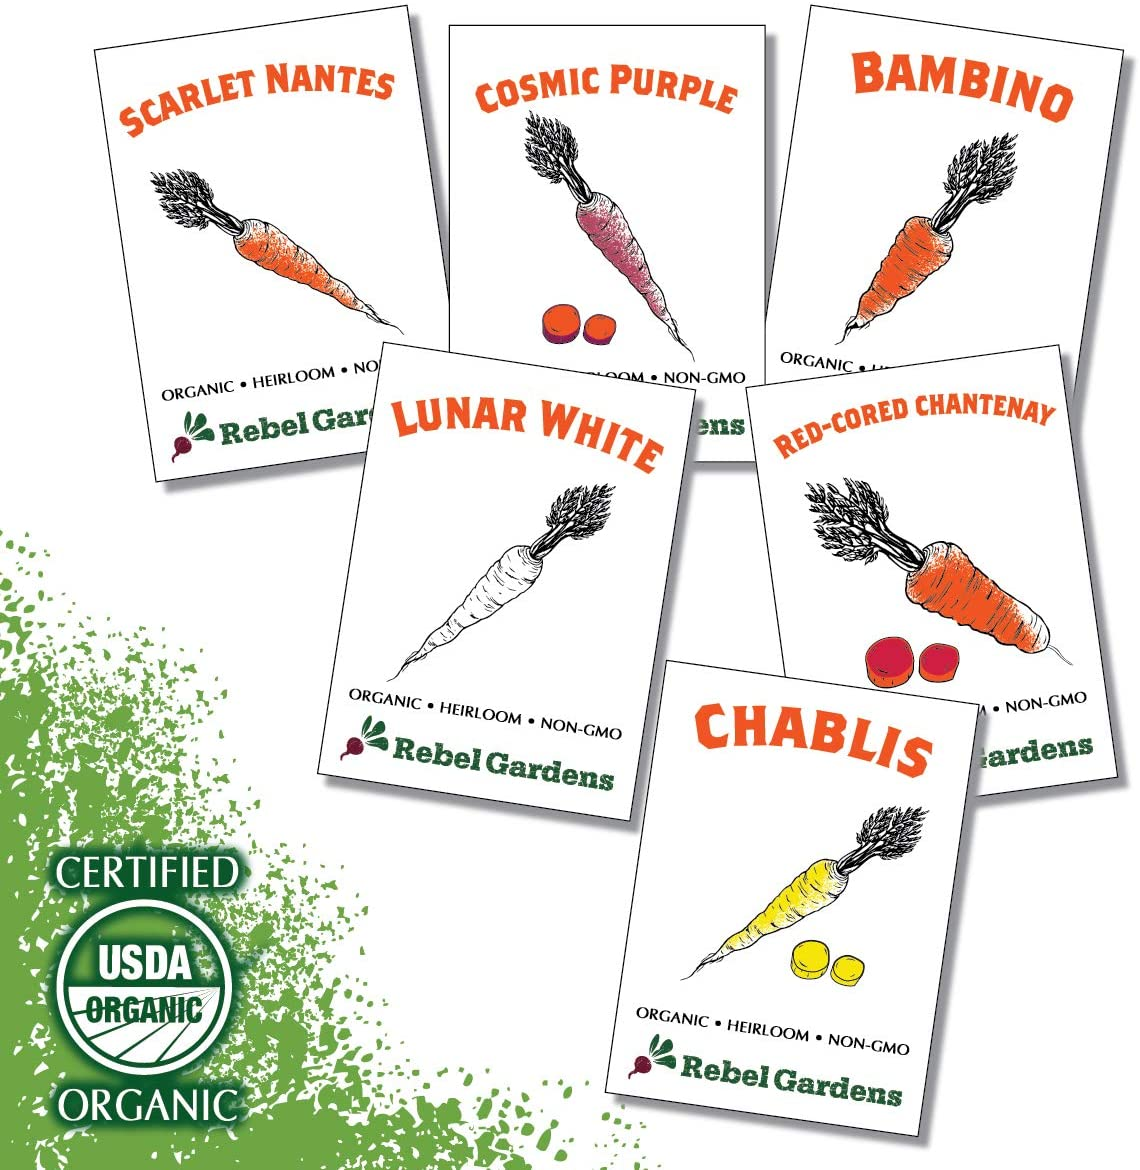 Heirloom Carrot Seeds - 6 Varieties of Organic Non GMO Carrots for Planting